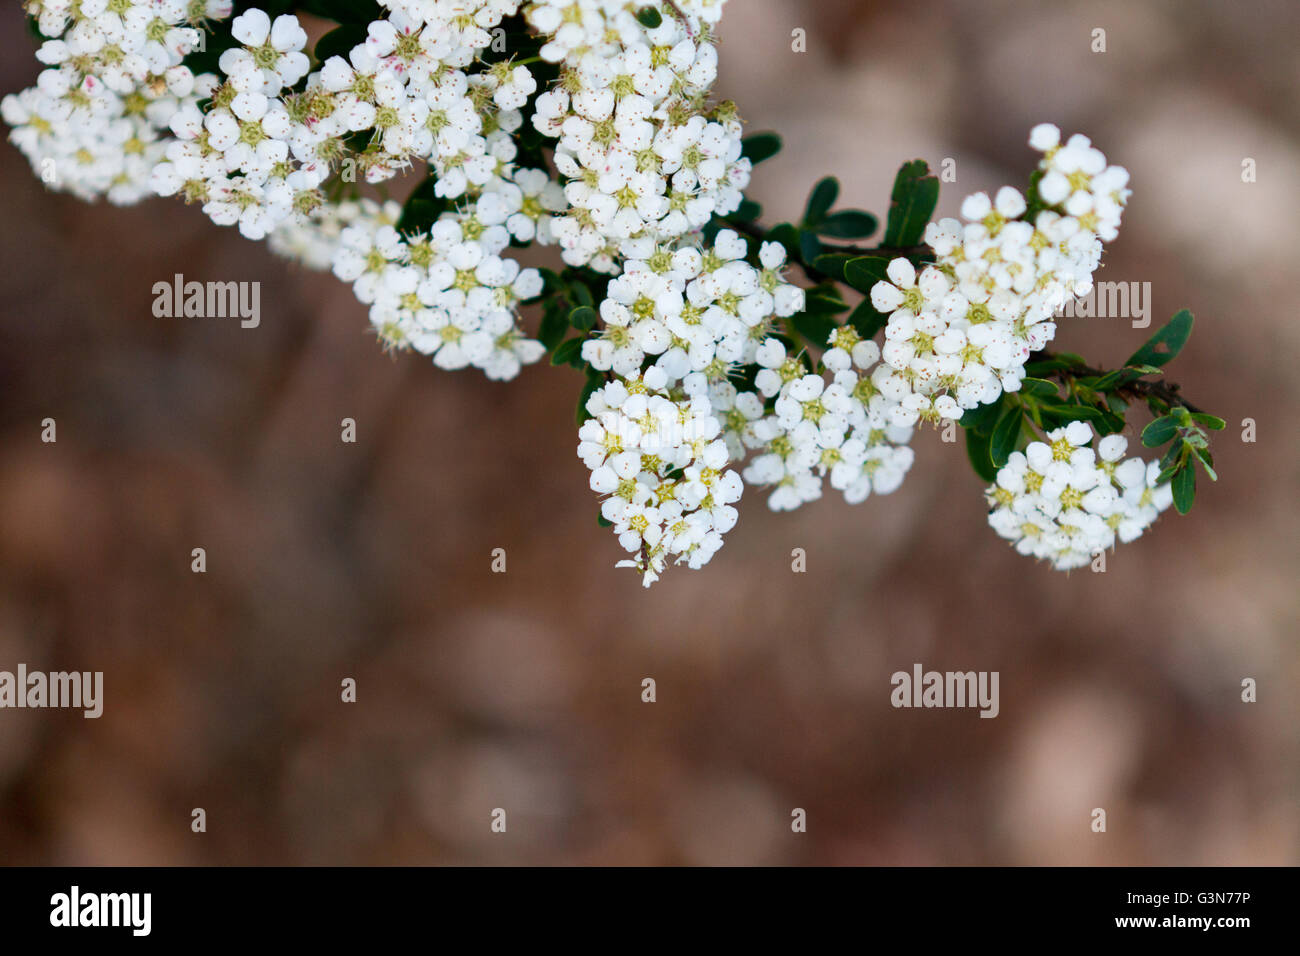 Clusters of tiny white flowers along a branch stretch out from the clusters of tiny white flowers along a branch stretch out from the tree with earthy toned background mightylinksfo